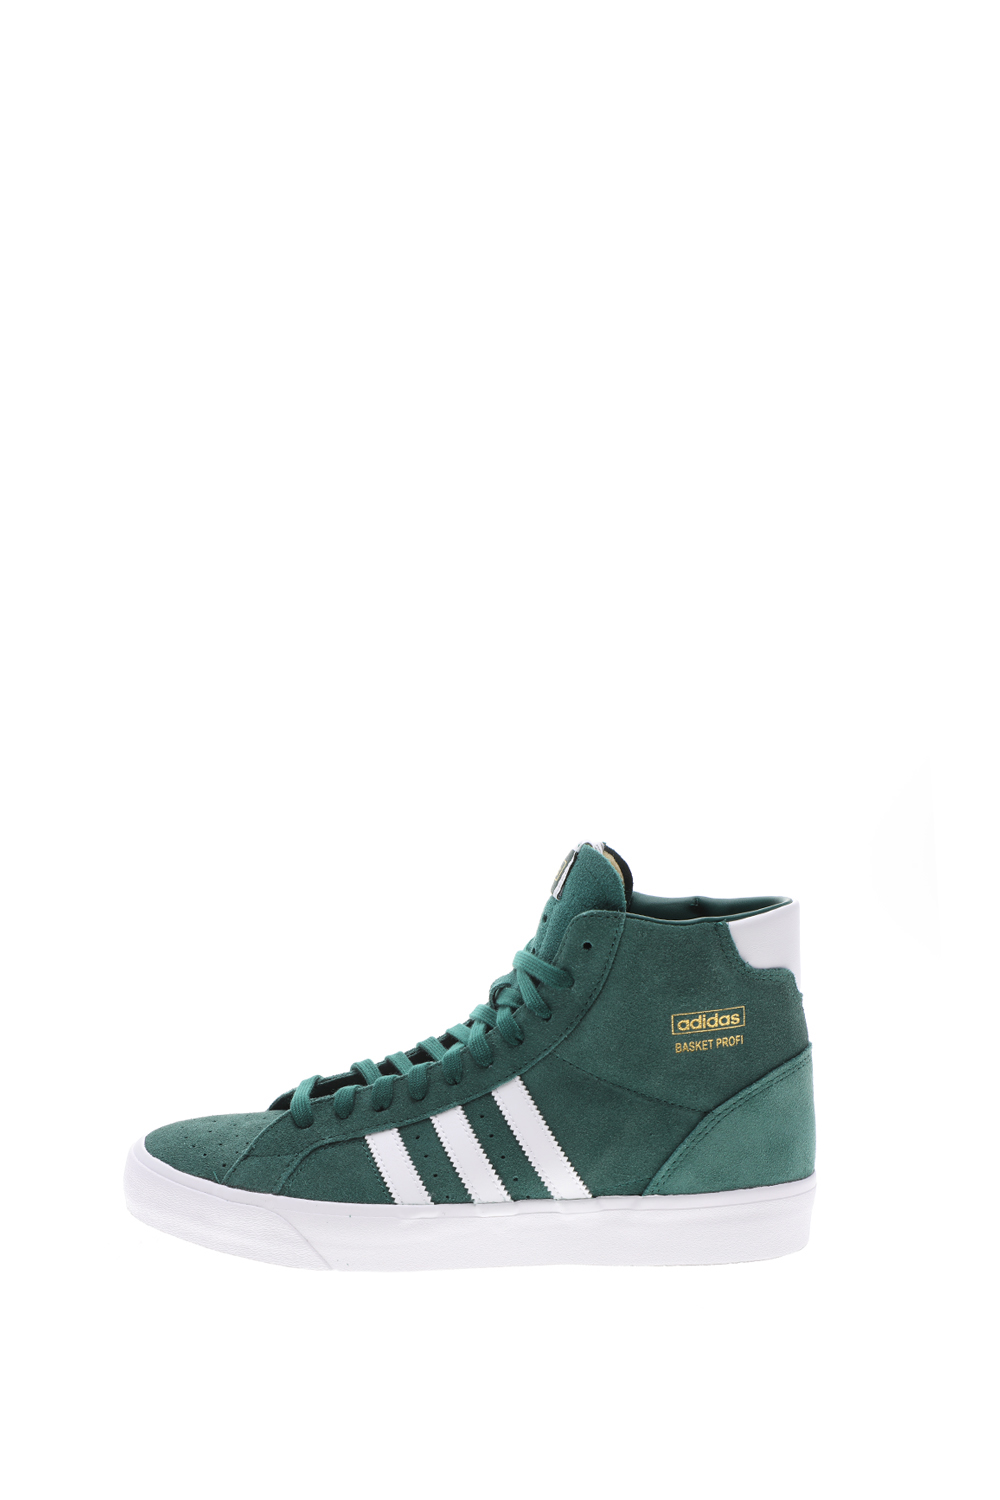 adidas Originals – Ανδρικά sneakers adidas Originals FW4513 BASKET PROFI πράσινα